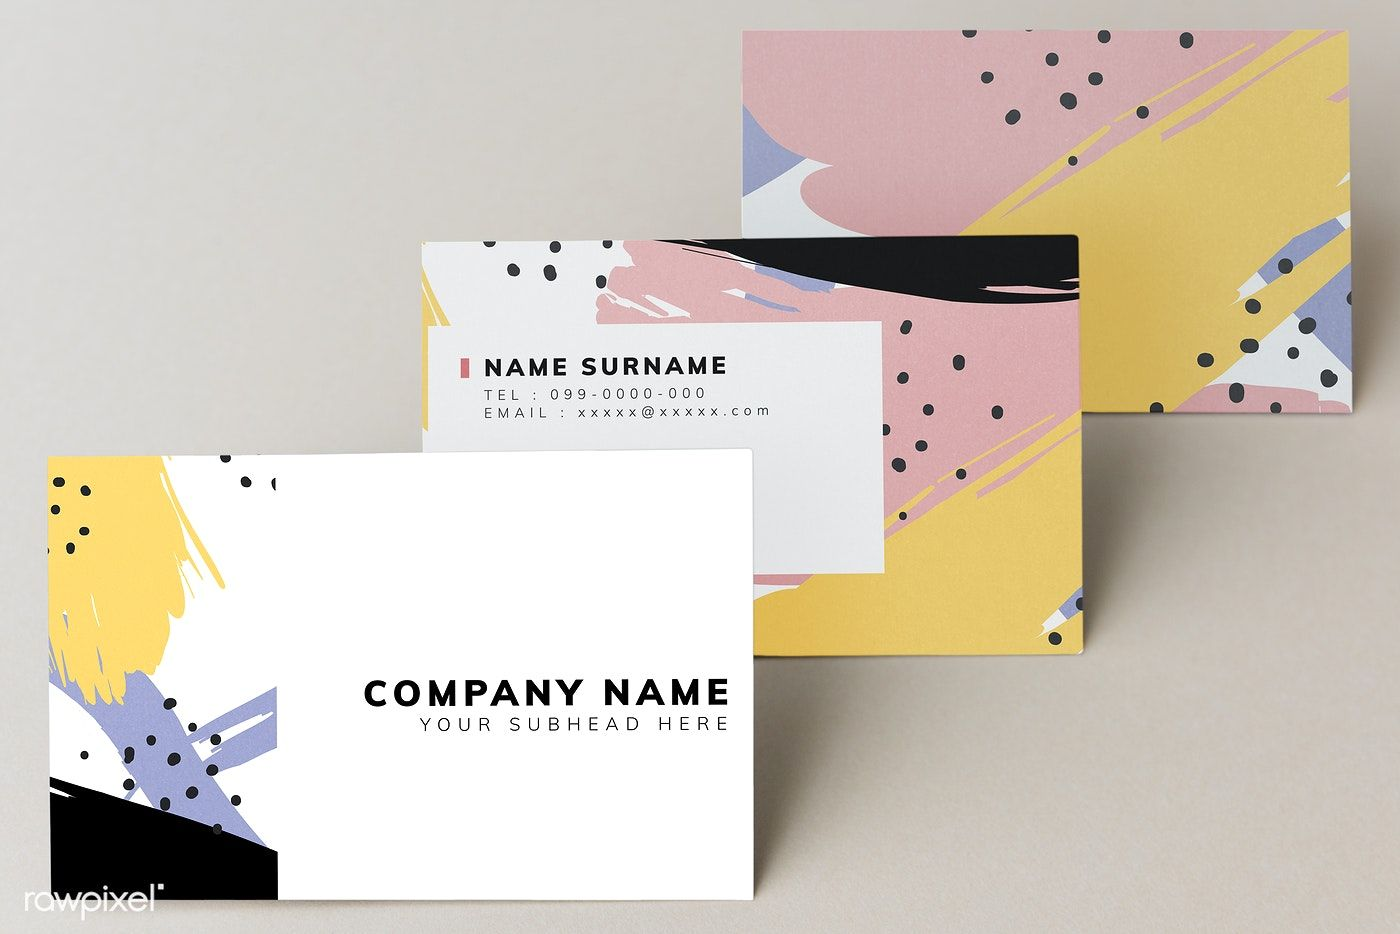 Colorful business card mockup design free image by